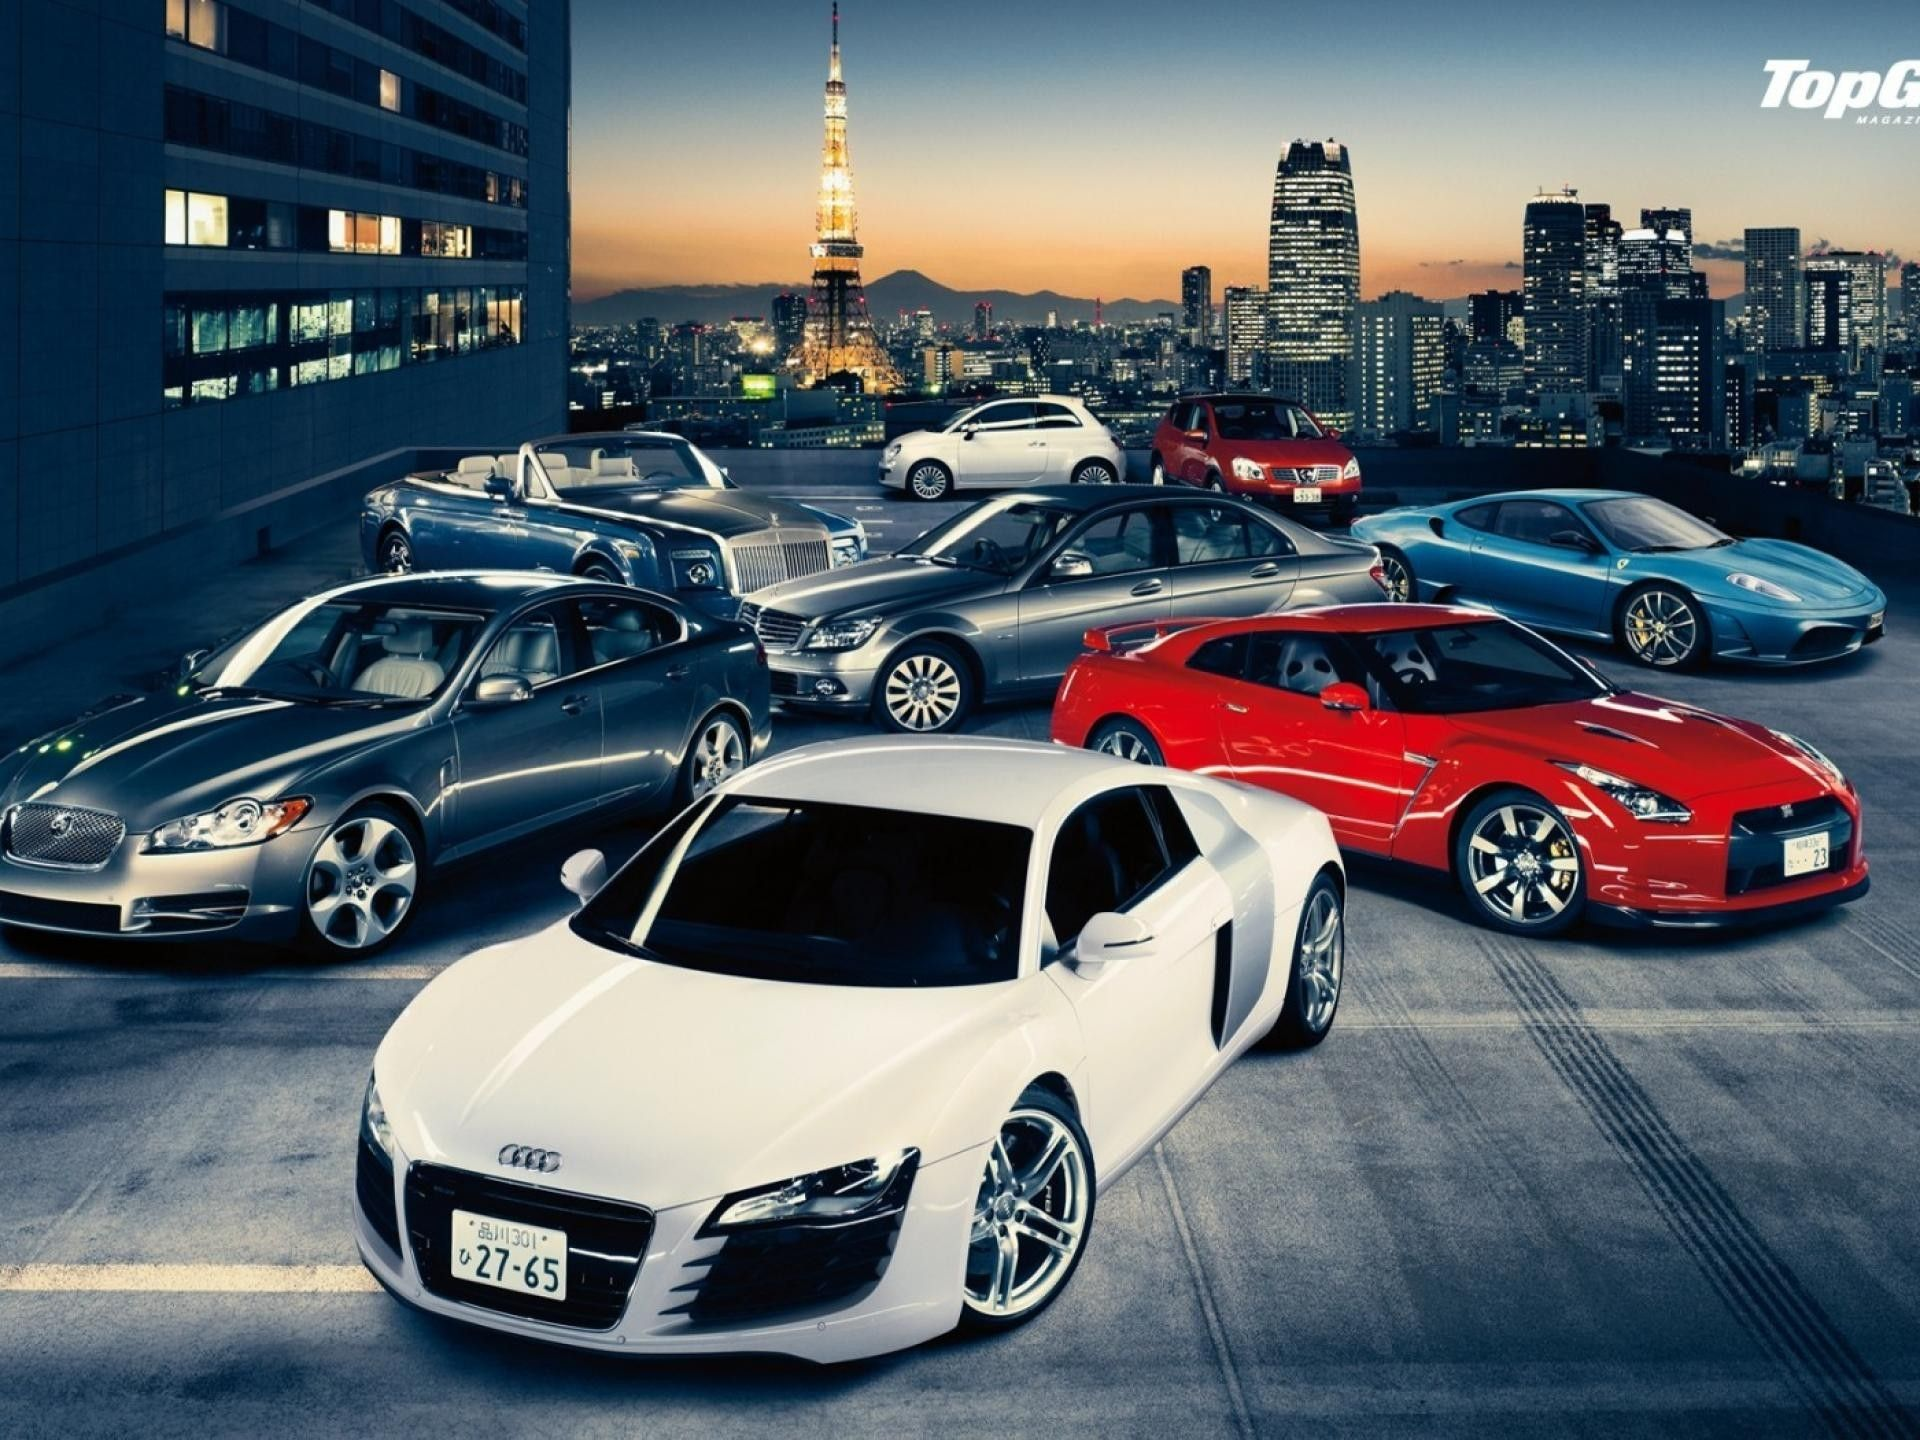 Best Images About Top Gear Wallpapers On Pinterest Cars X Top Gear Backgrounds